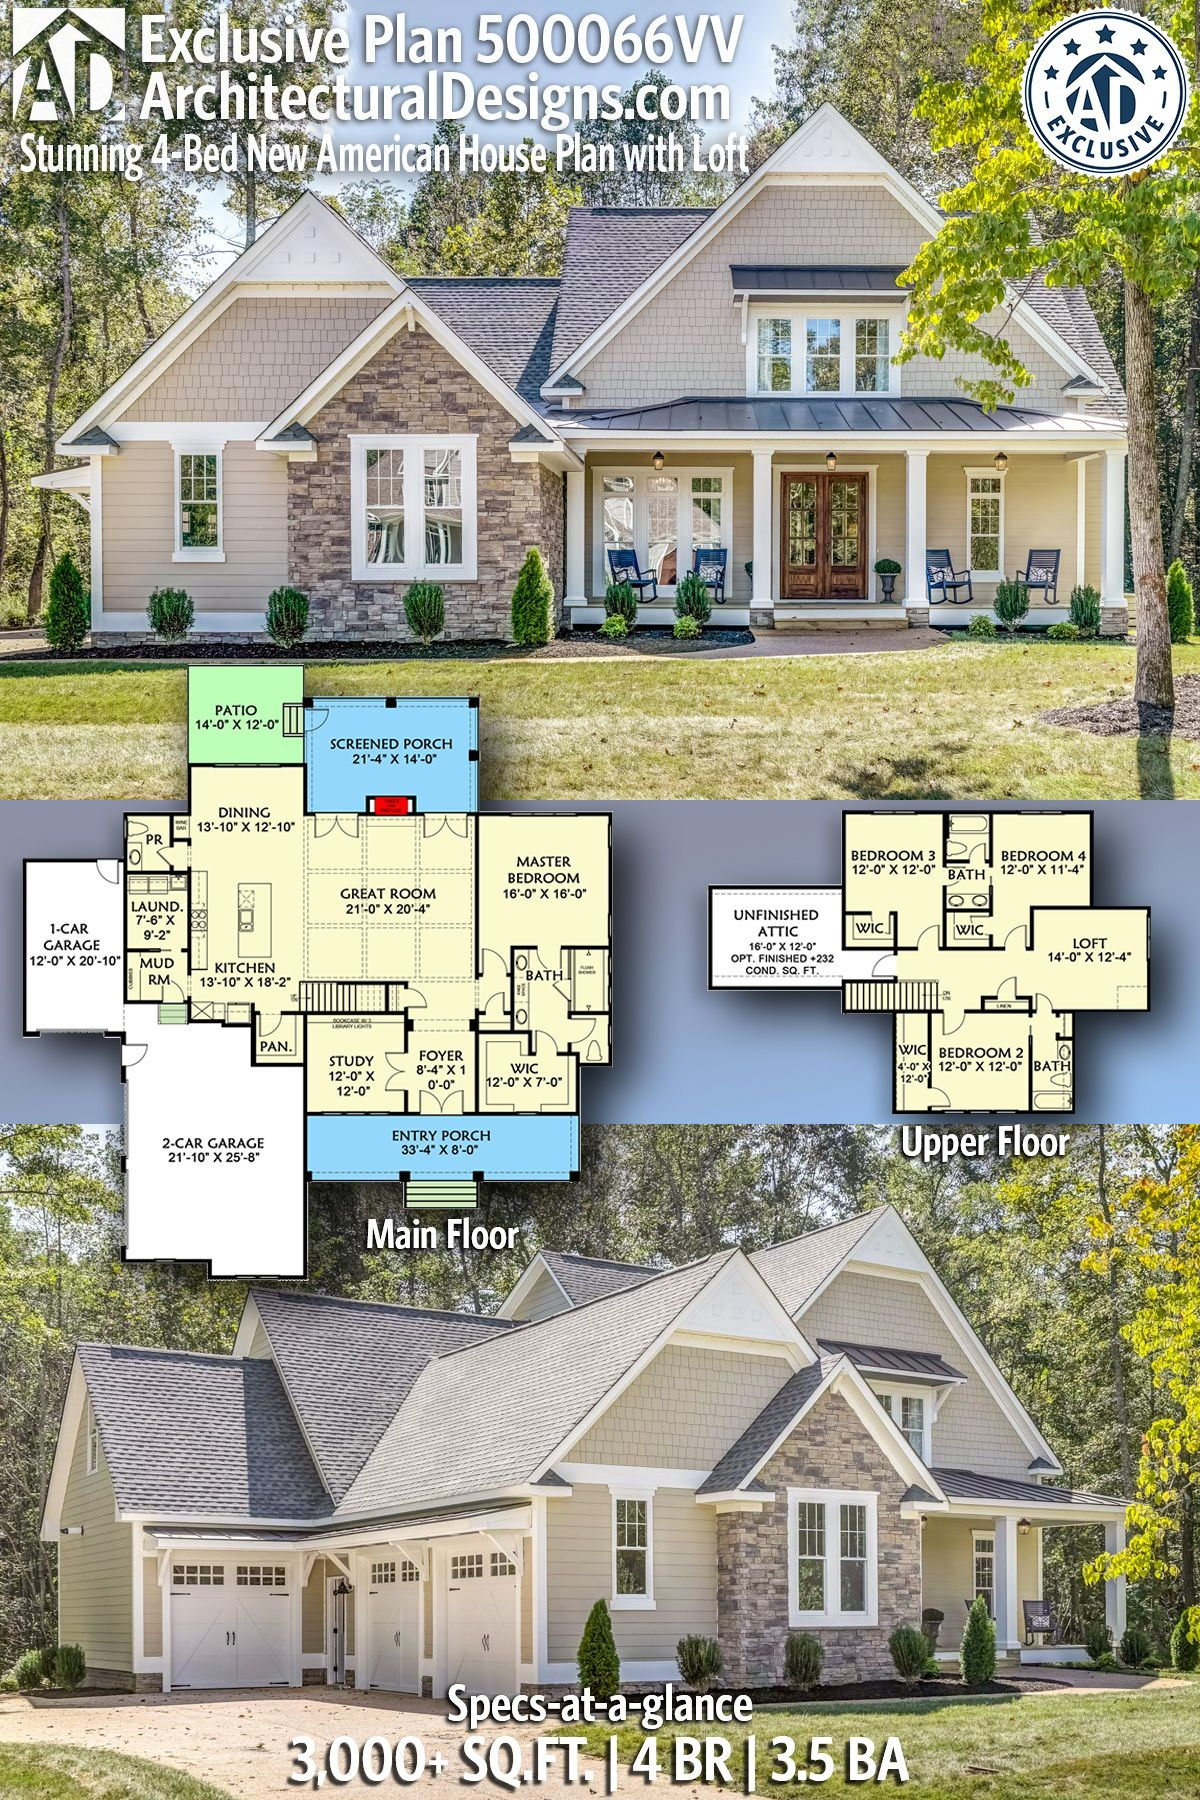 Plan 500066vv Stunning 4 Bed New American House Plan With Loft And Unfinished Attic Space House Plan With Loft Craftsman House Plans American Houses